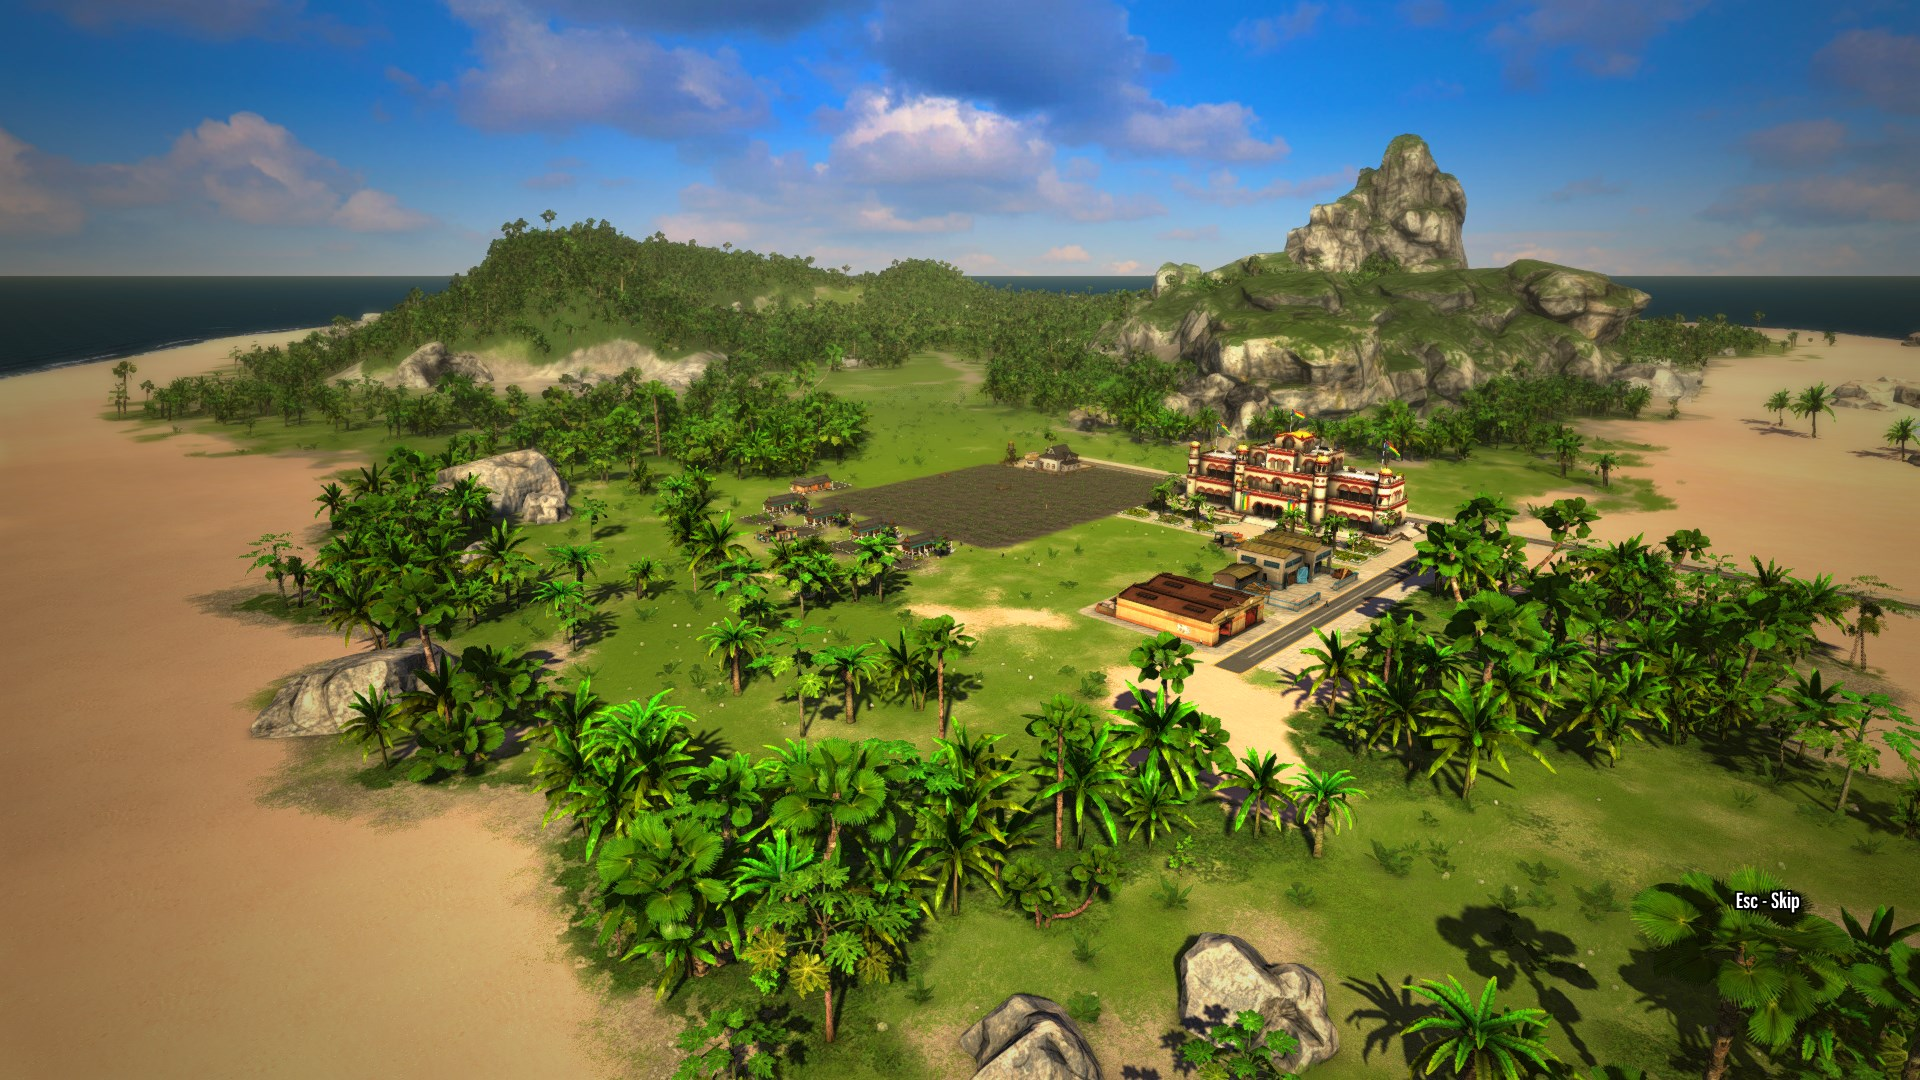 mad world dlc for tropico 5 now out includes new scenario and the asylum